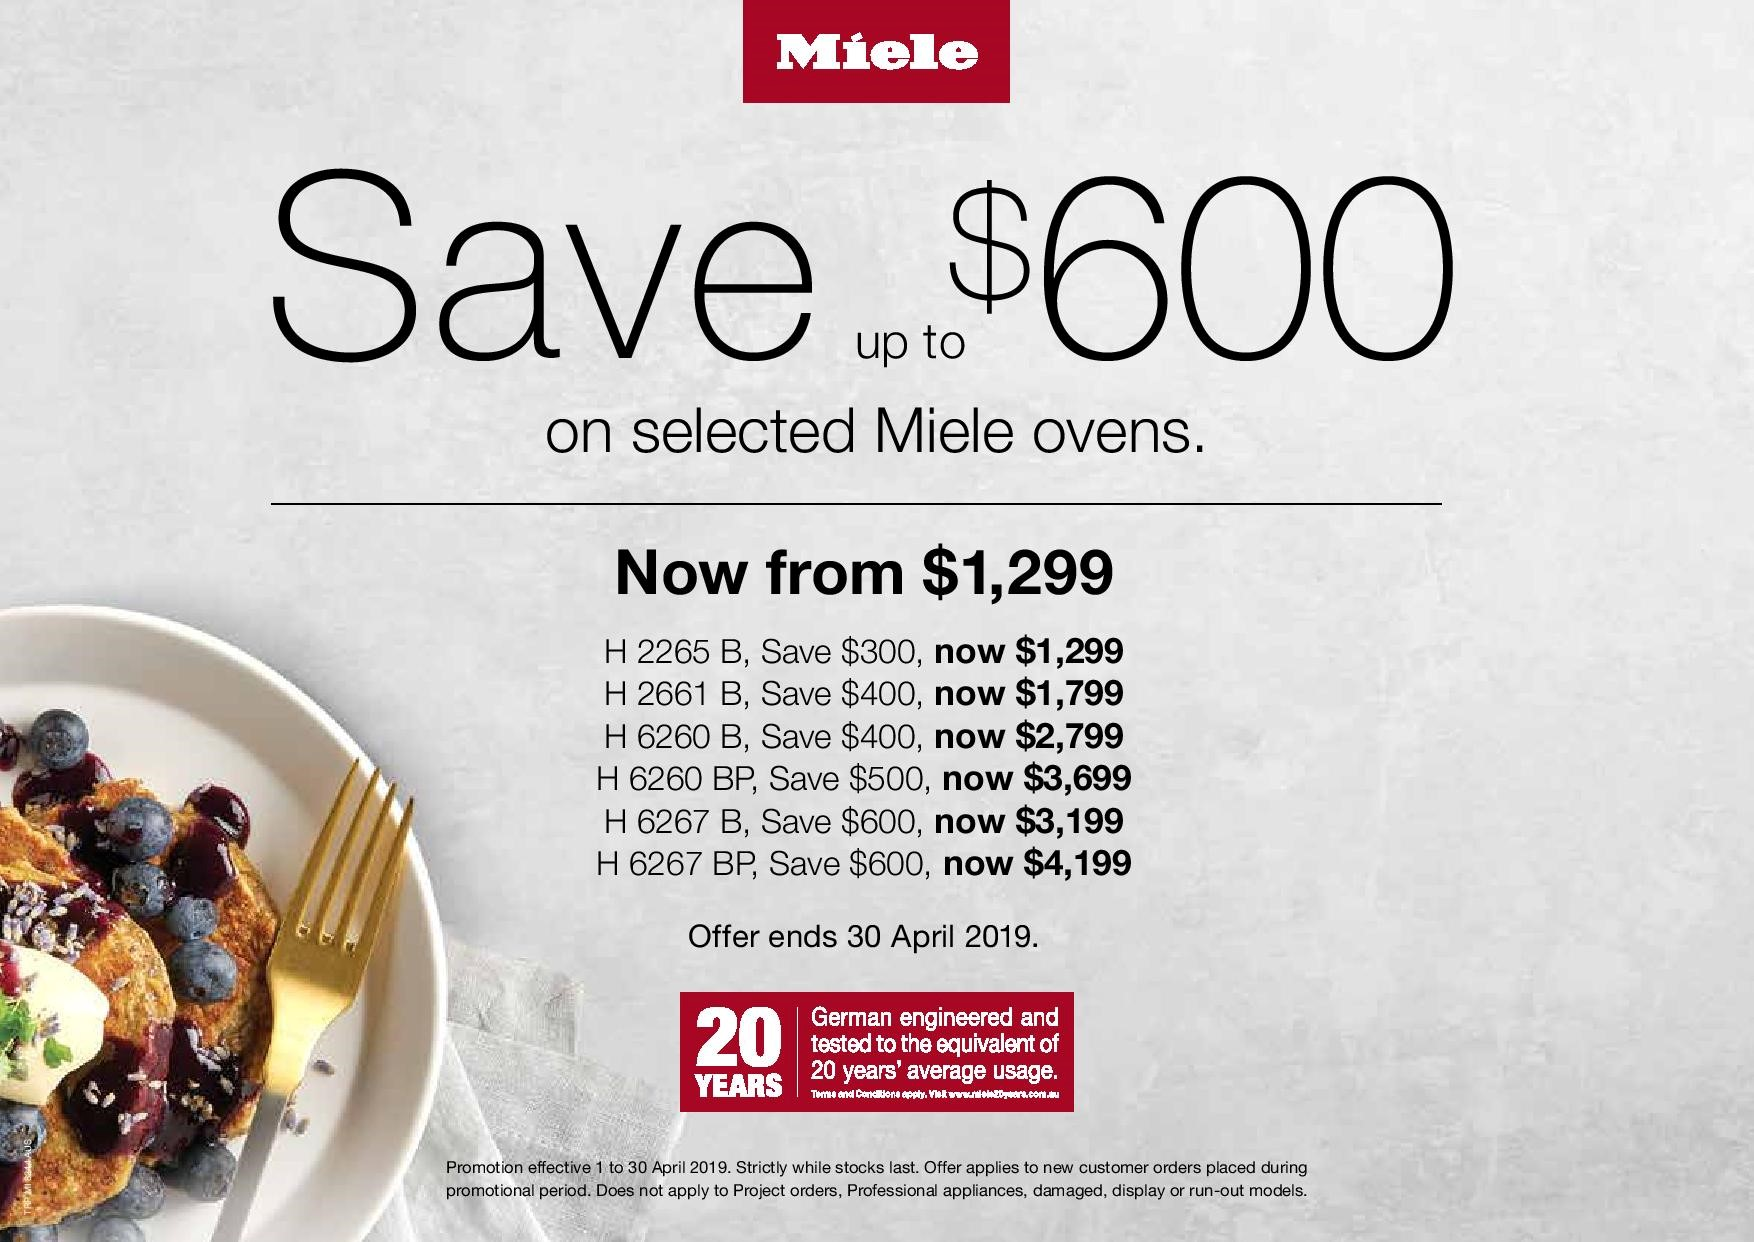 Miele Oven Promotion